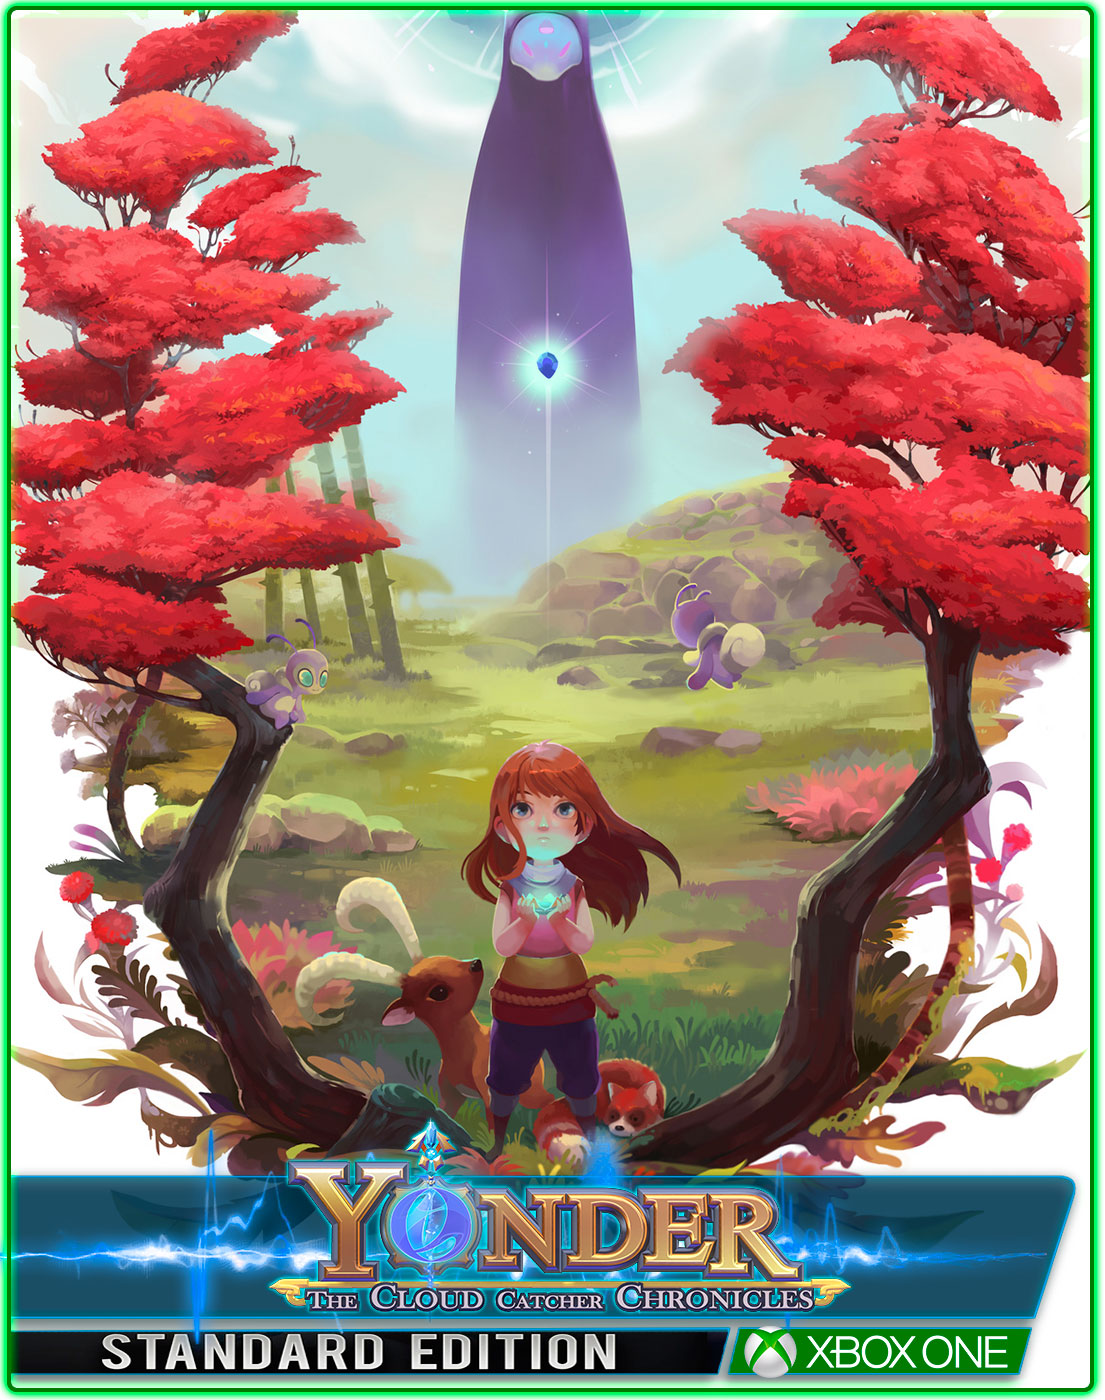 Yonder The Cloud Catcher Chronicles(XBOX ONE) 2019